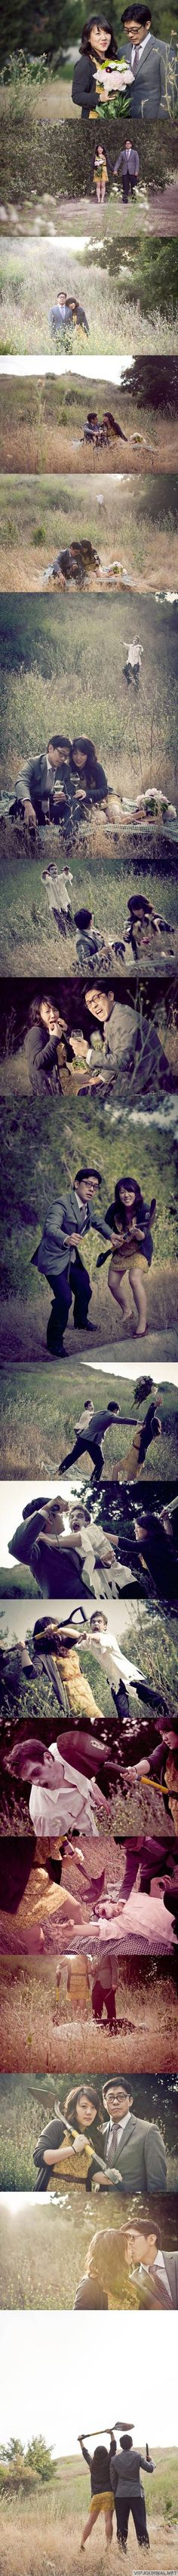 Awesome engagement photos.